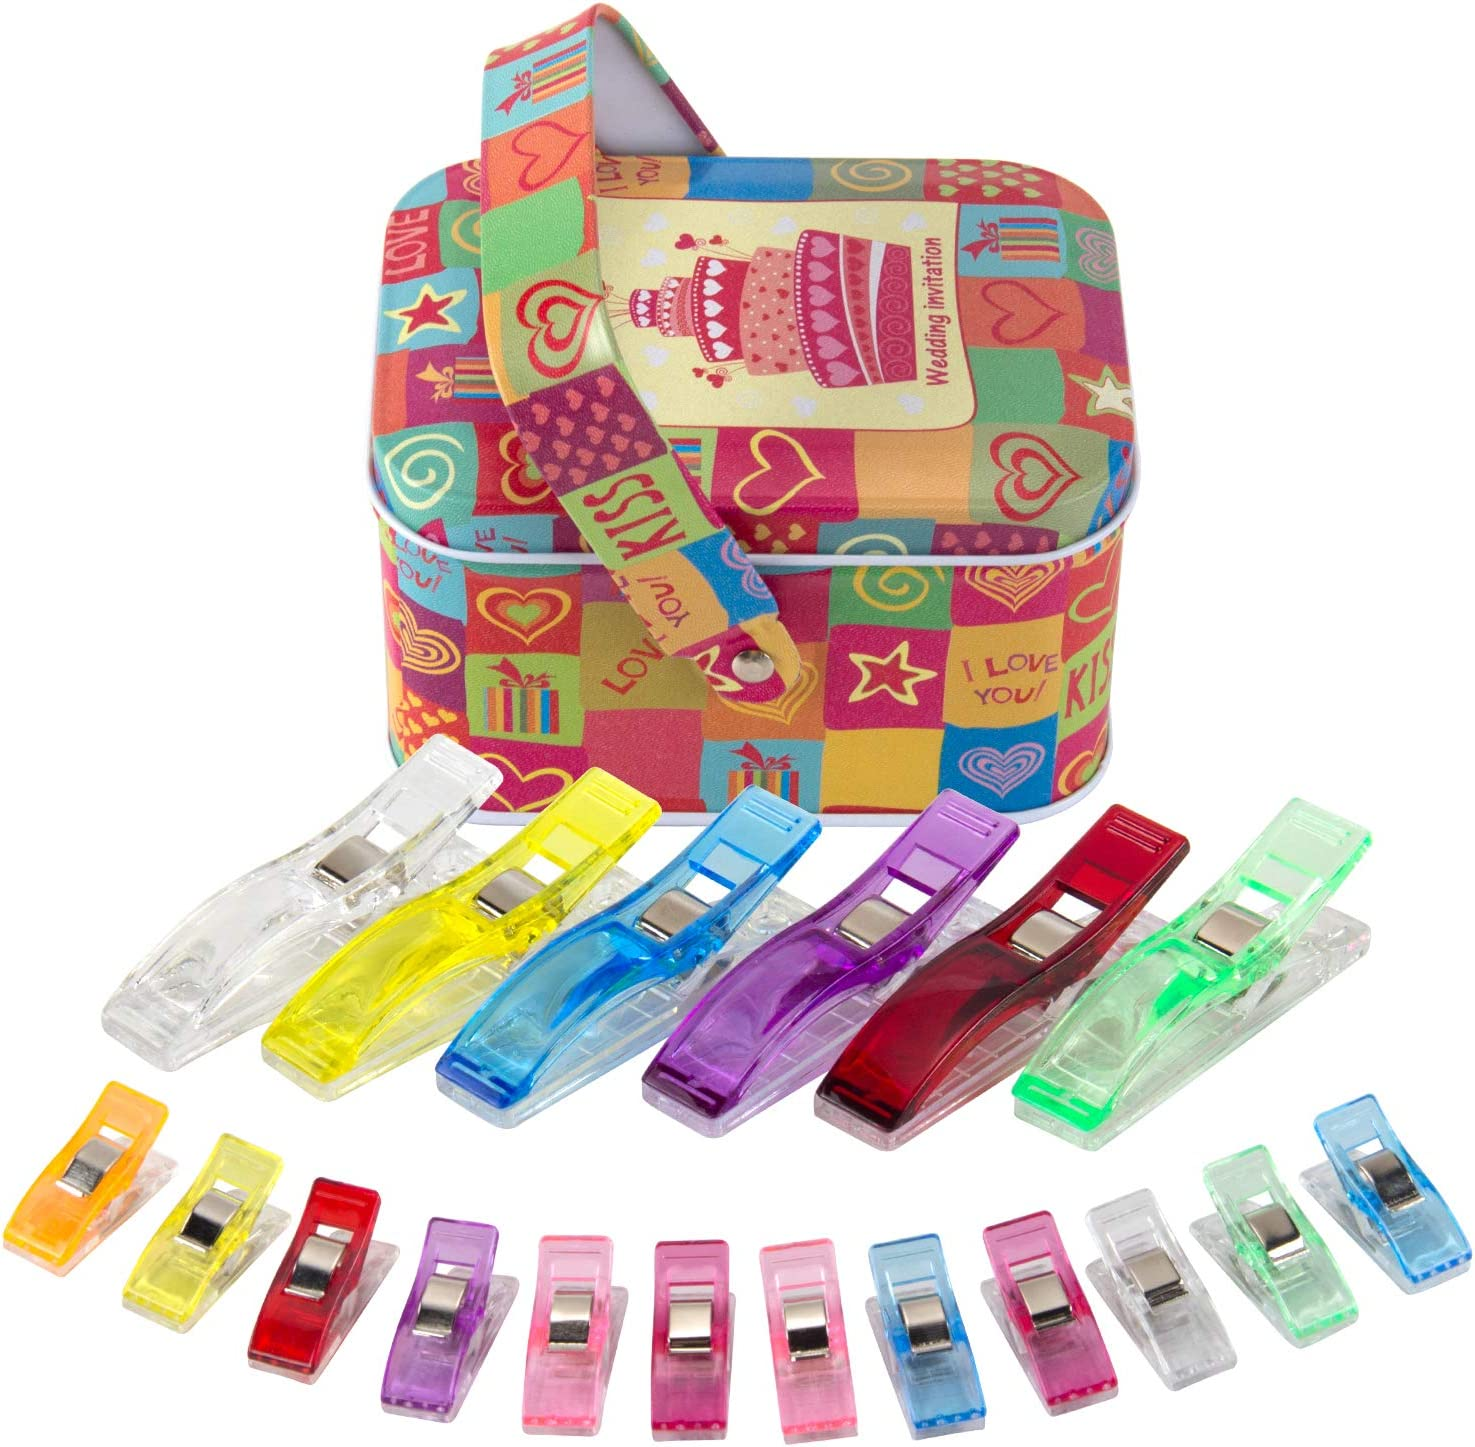 Knitting Safety Clips Crafting Sewing Wonder Clips Quilting 50 Pieces Jumbo Size Sewing Quilting Clips Multicolor for Sewing